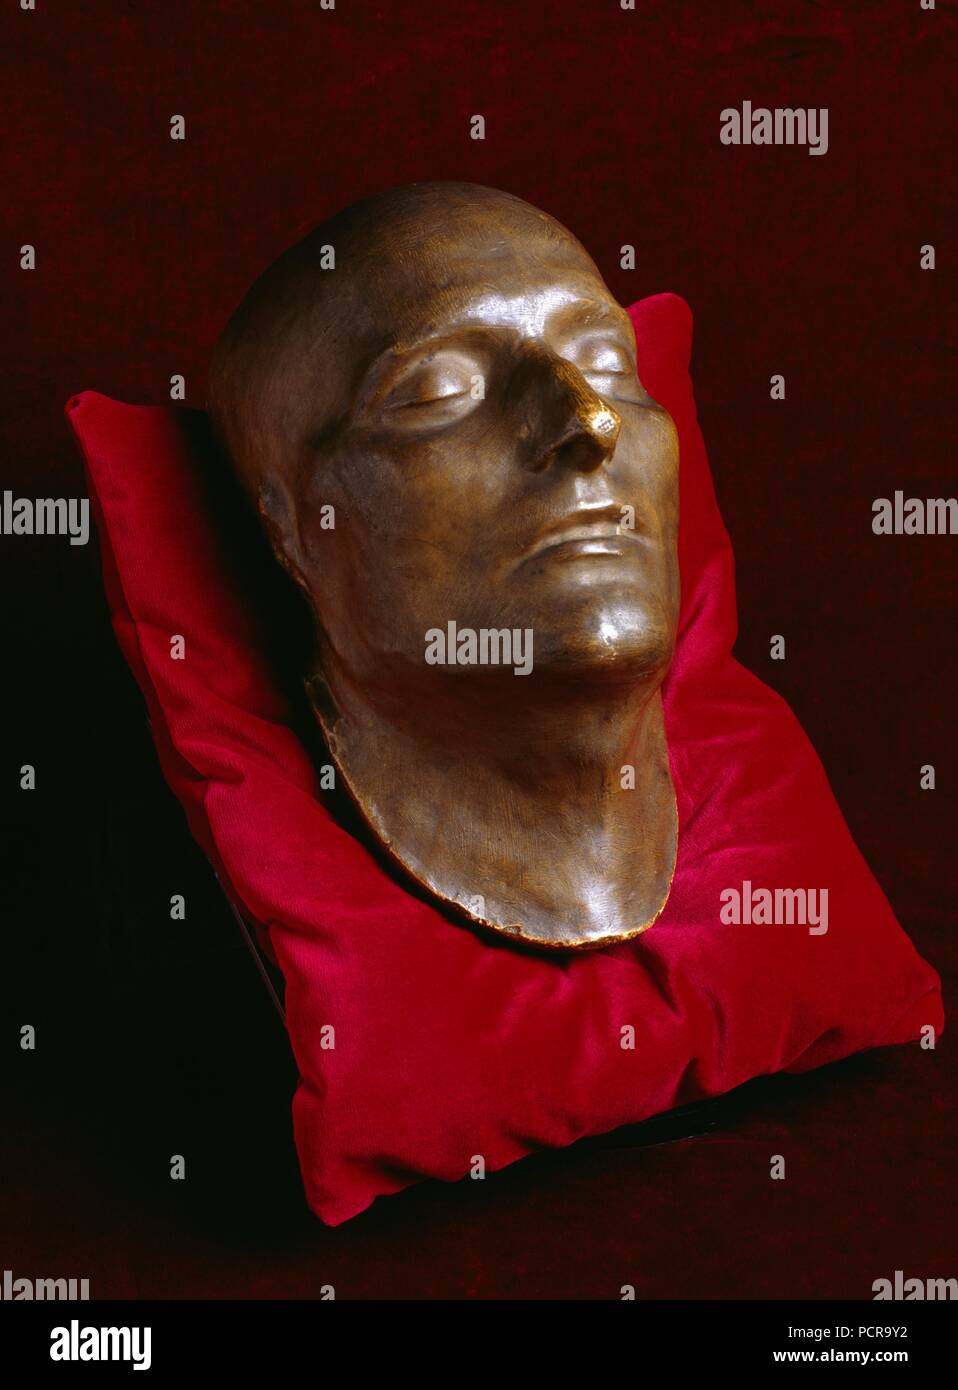 Napoleon's death mask on display in the Basement Gallery, Apsley House, London, c1980-c2017. - Stock Image